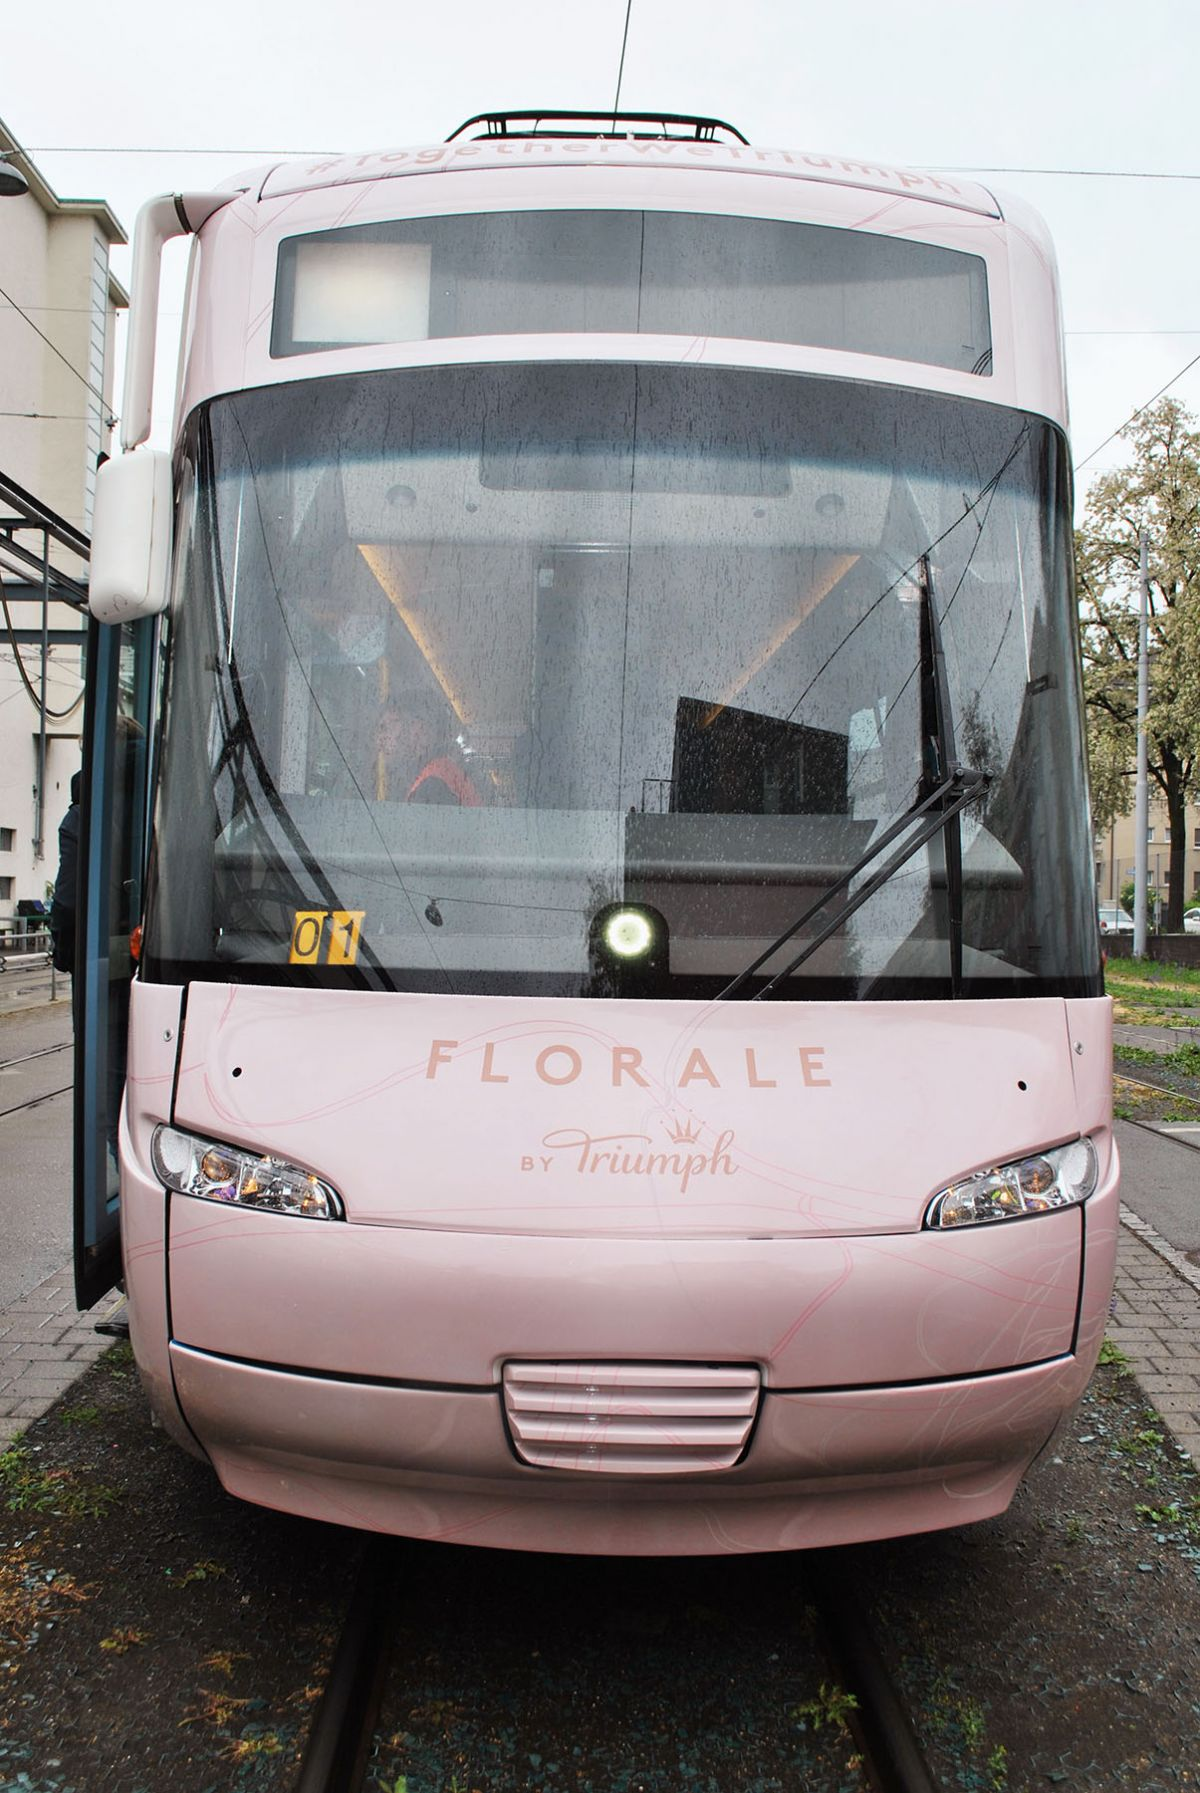 Florale by Triumph Werbetram by Christinger